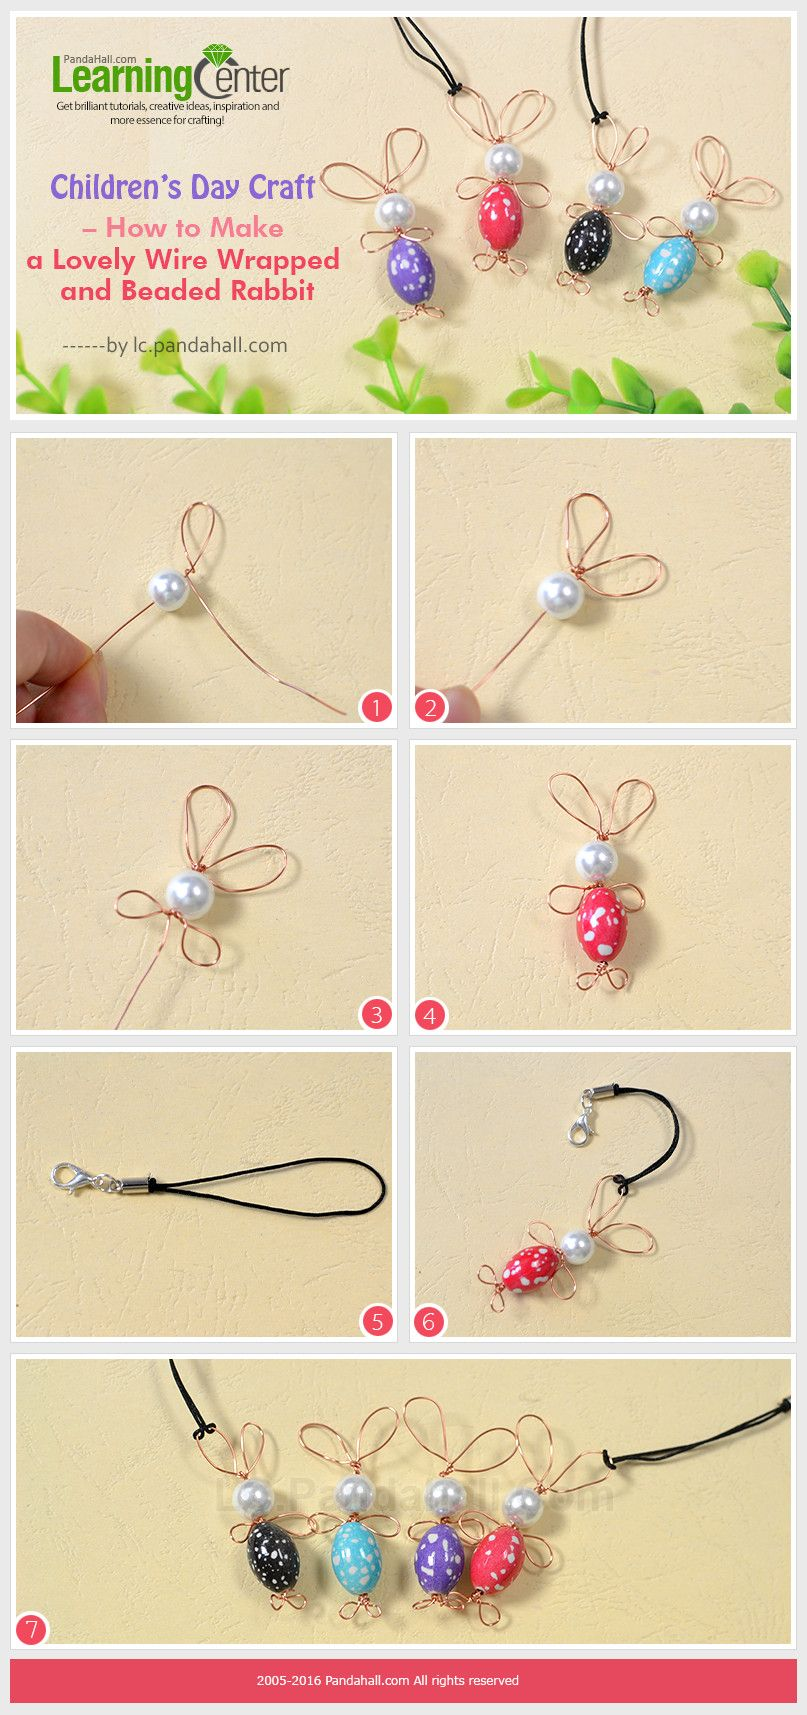 These Diy Wire Wrapped And Bead Rabbit Ornaments Are Great For U To Make Some Easy Crafts With Kids To Spare Th Jewelry Crafts Beads And Wire Wire Wrapping Diy